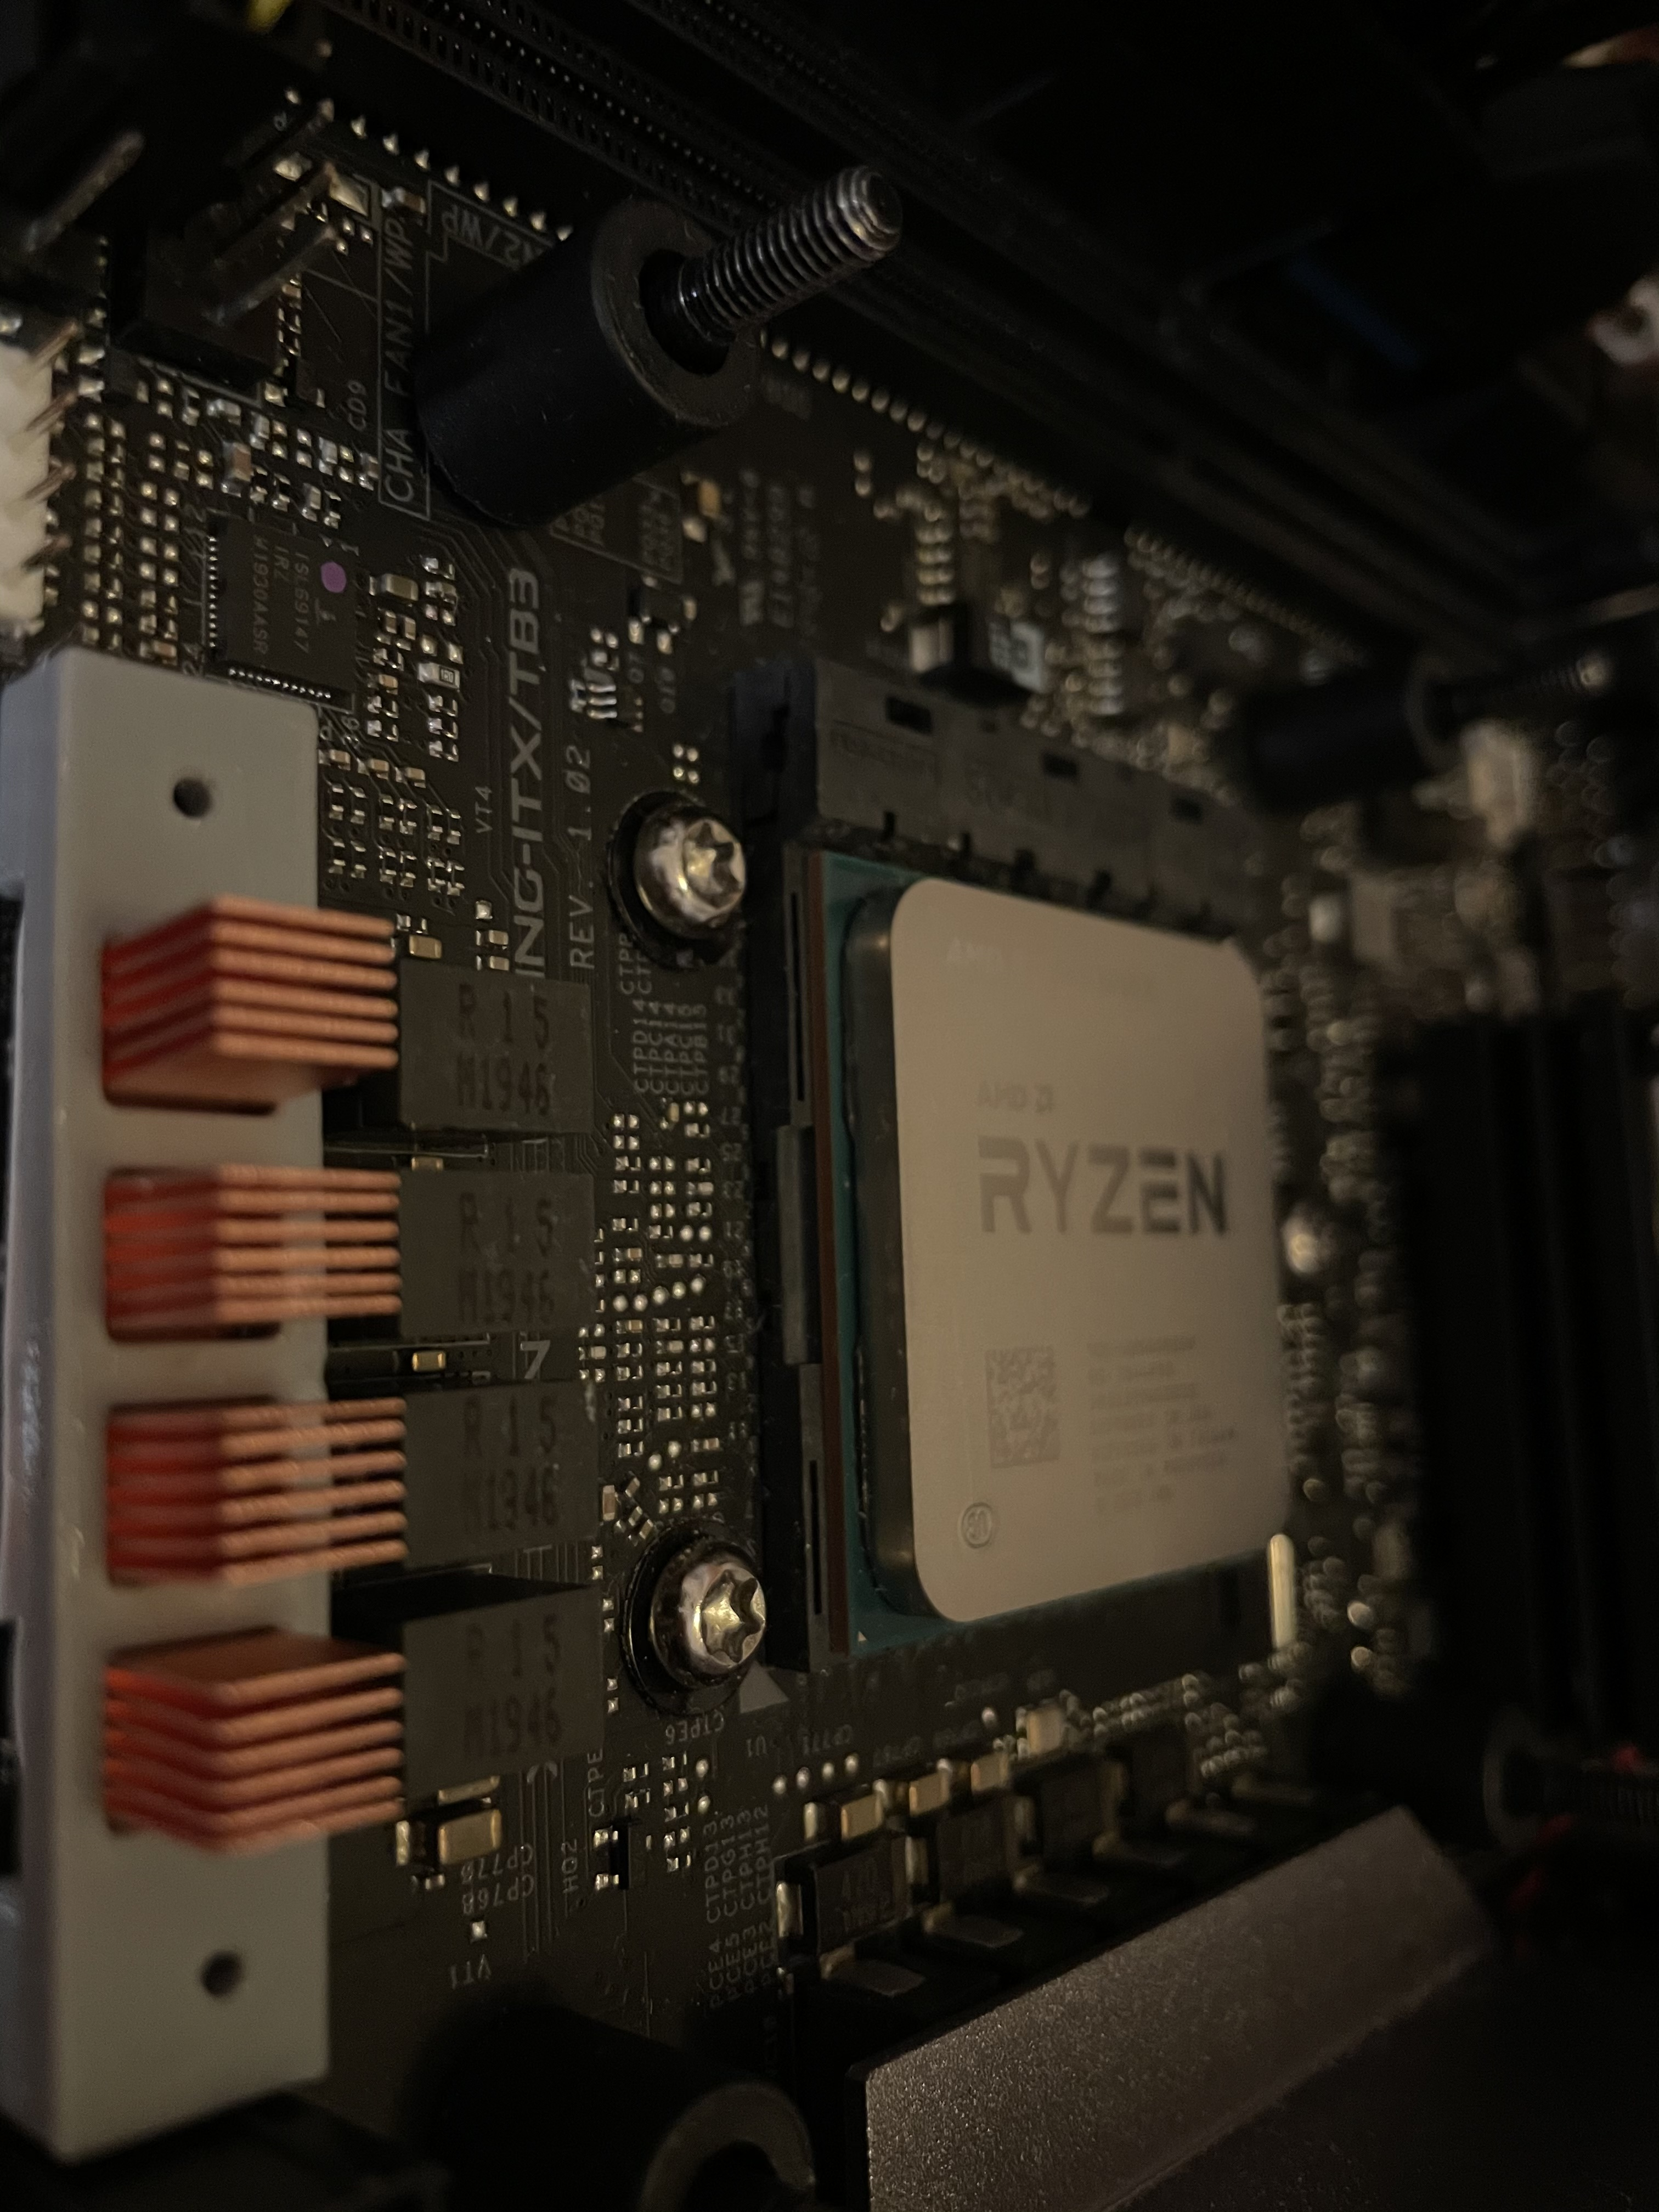 photo of heatsink mount with cpu out of focus